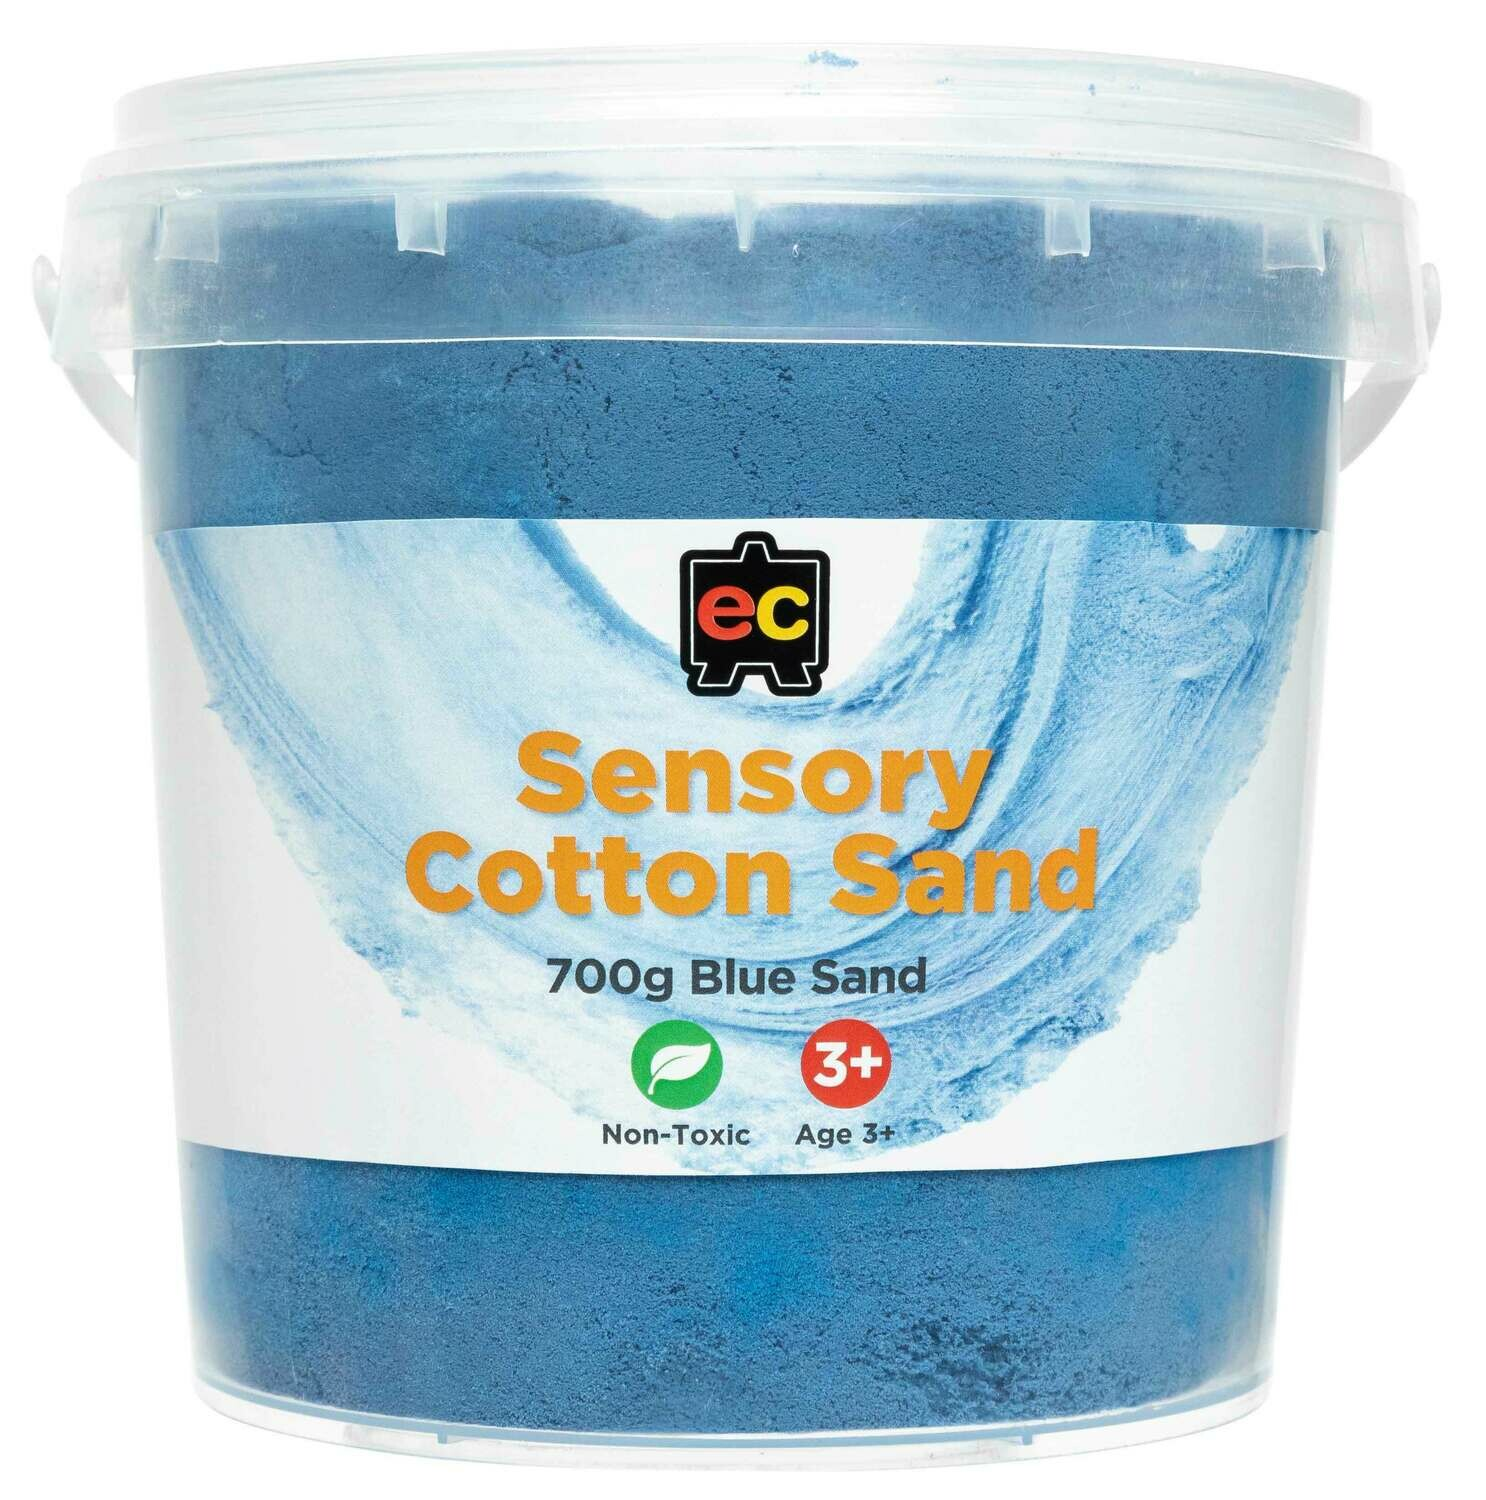 Pre-Order Now Sensory Cotton Sand 700g Tub